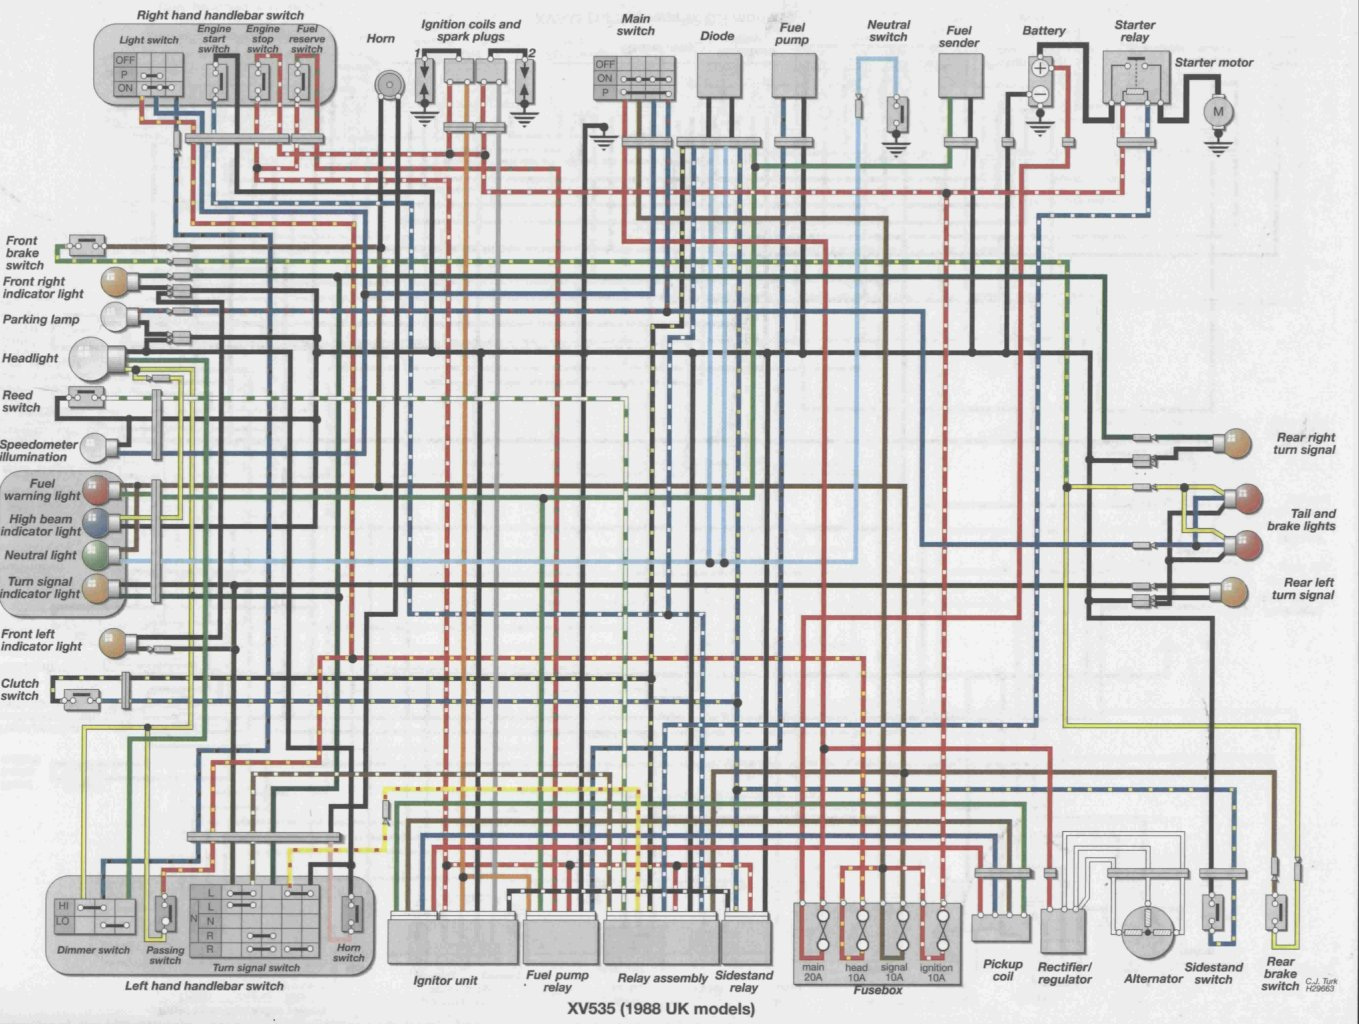 Yamaha Virago 250 Wiring Harness Free Download Wiring Diagrams